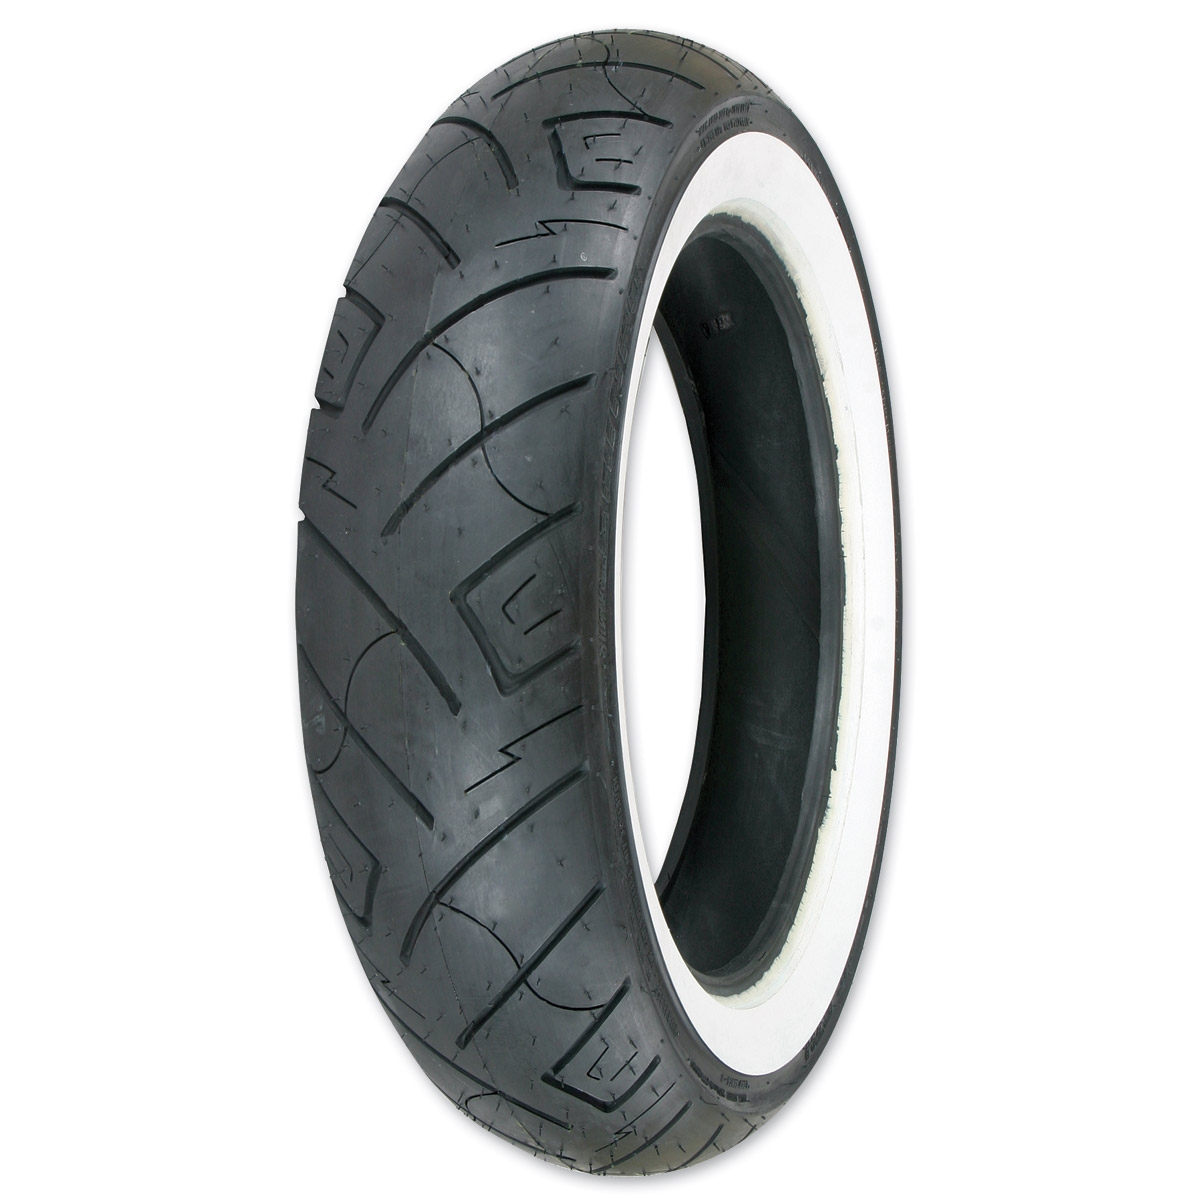 Shinko 777 130/80-17 Wide Whitewall Front Tire